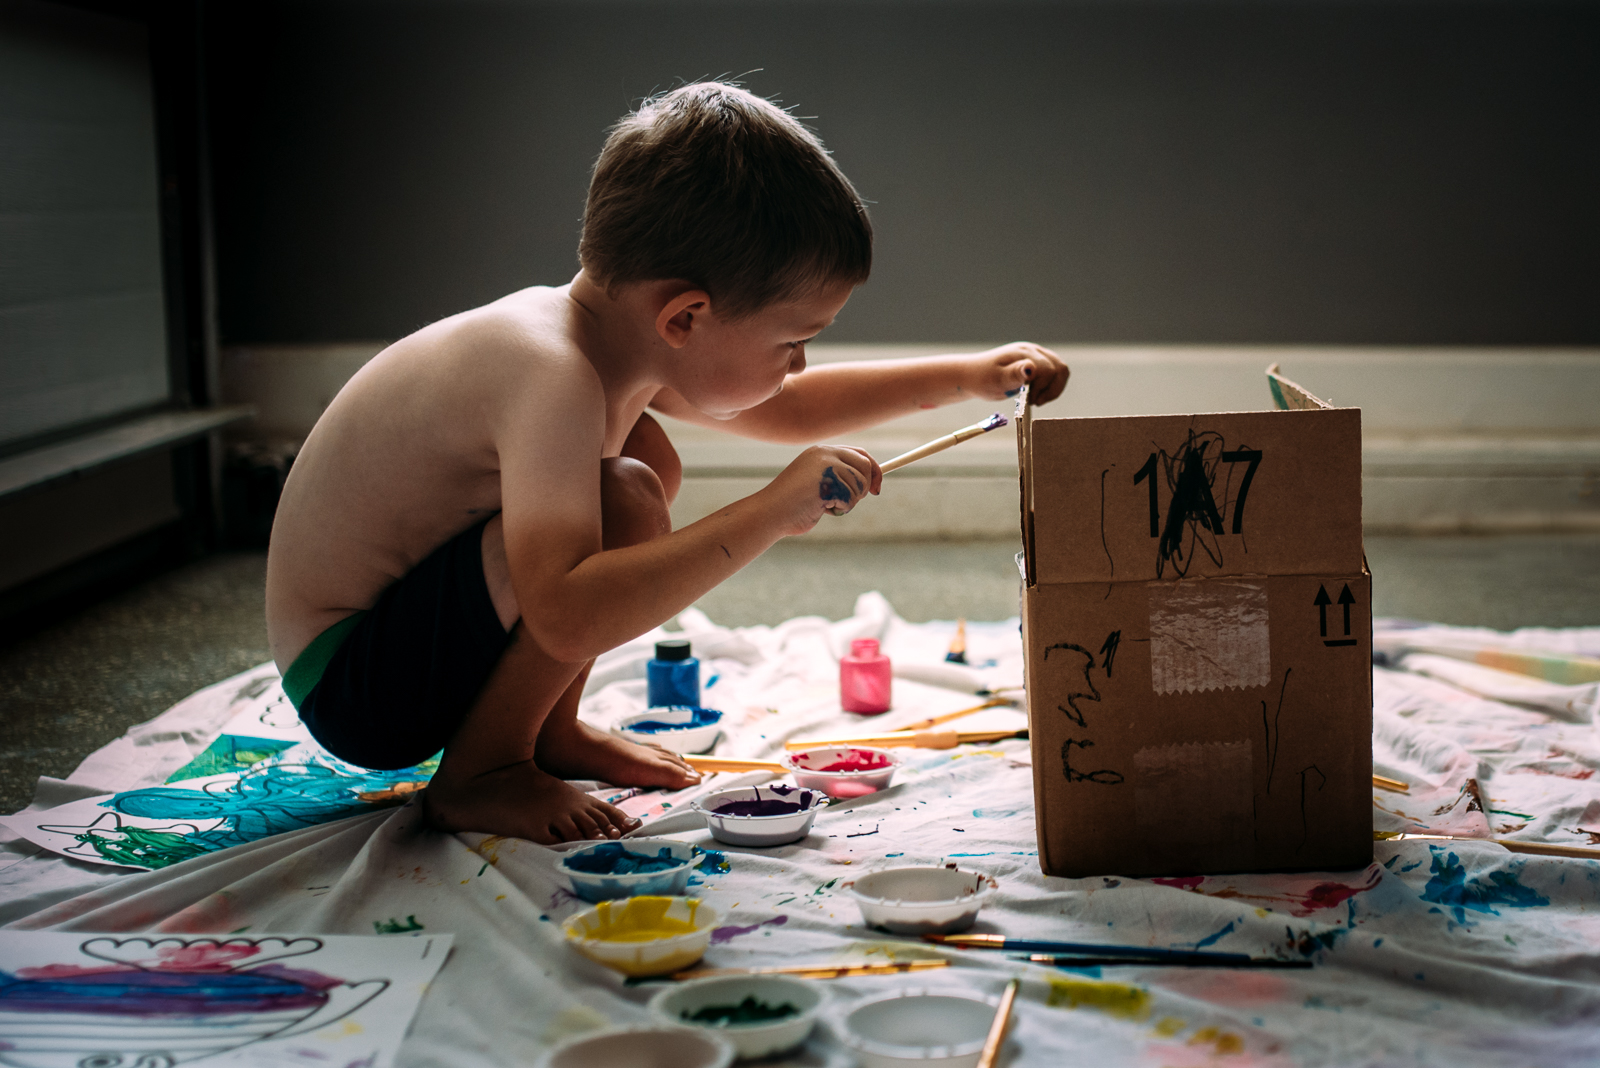 kid painting a box by Susan Grimes